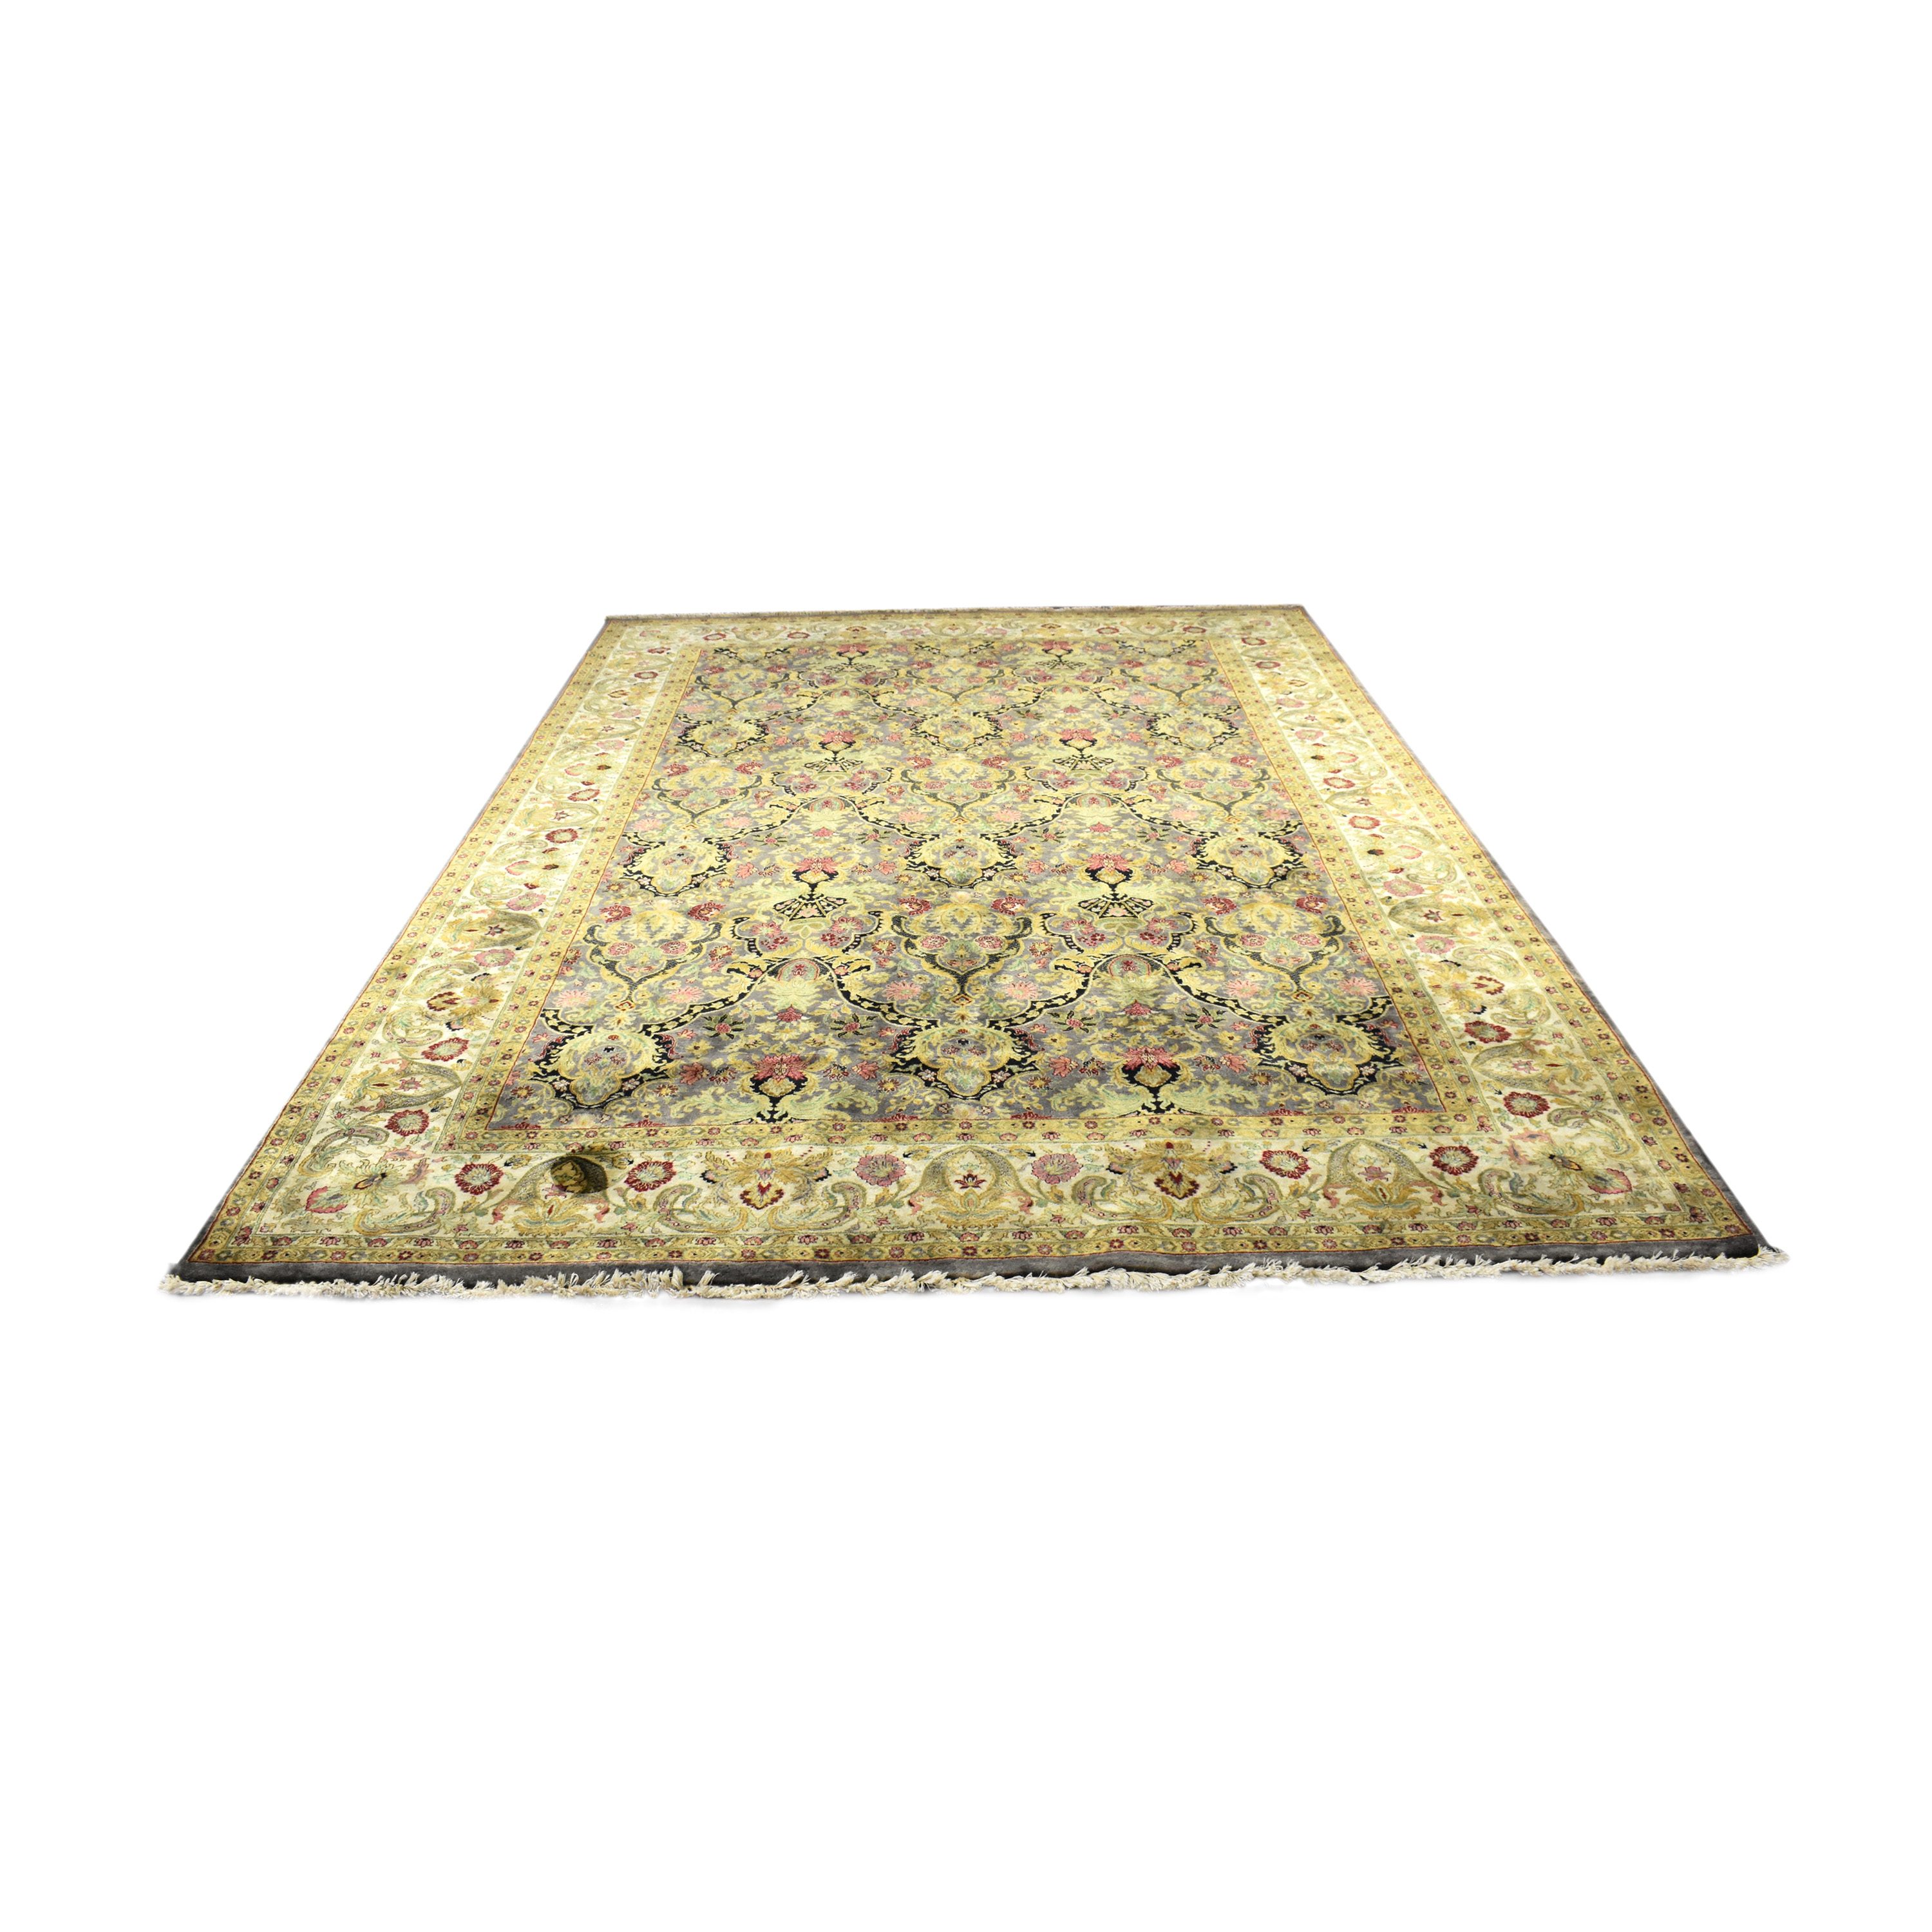 Samad Golden Age Area Rug sale